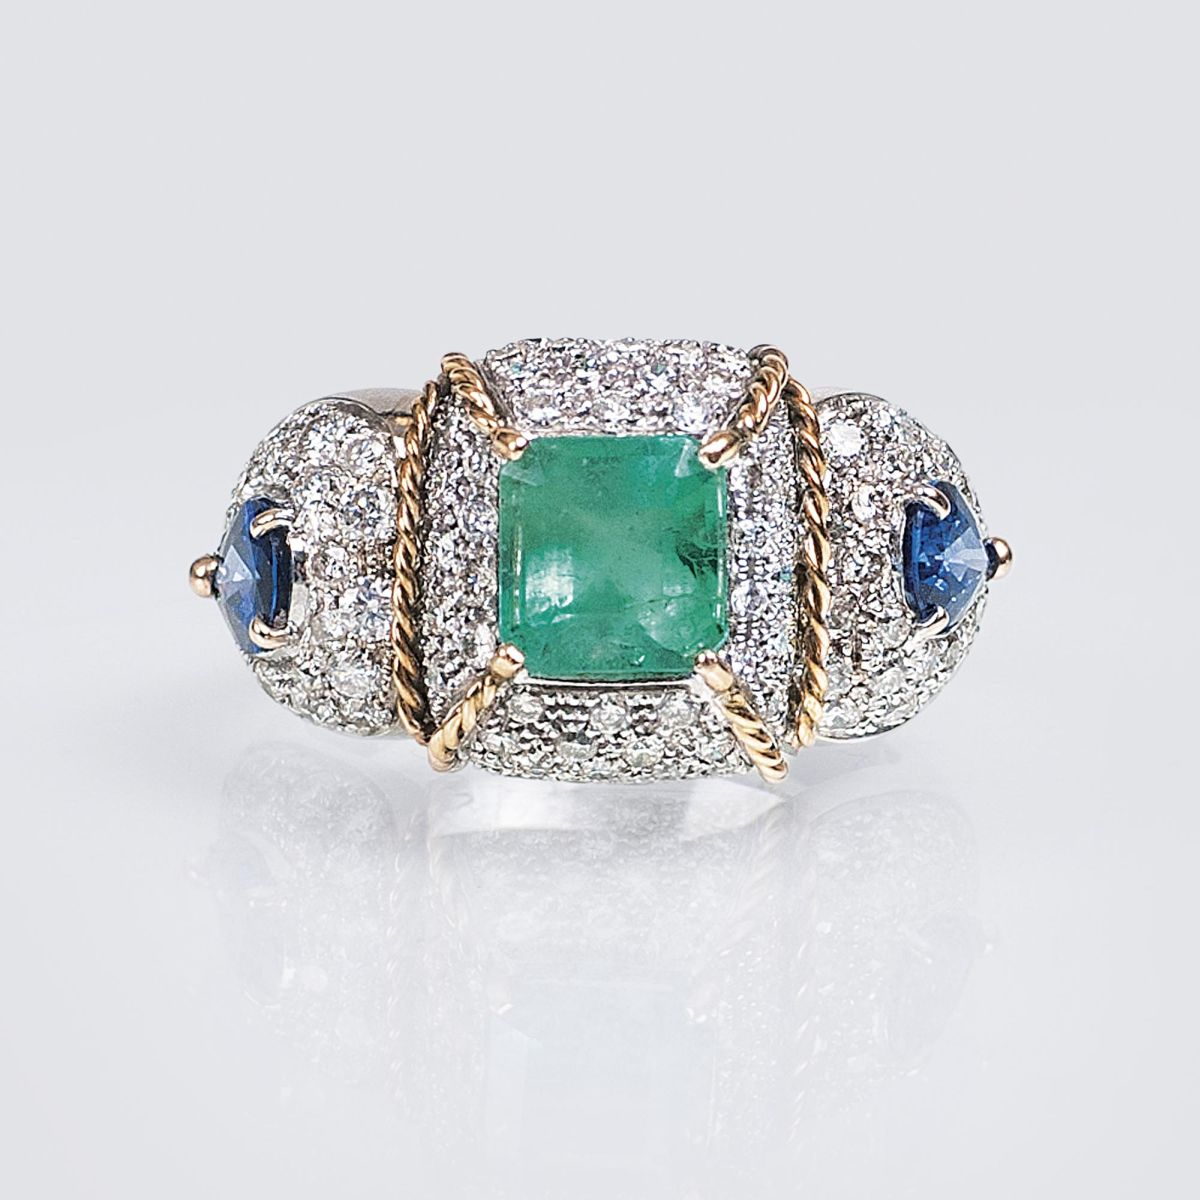 A Vintage Emerald Sapphire Ring with Diamonds